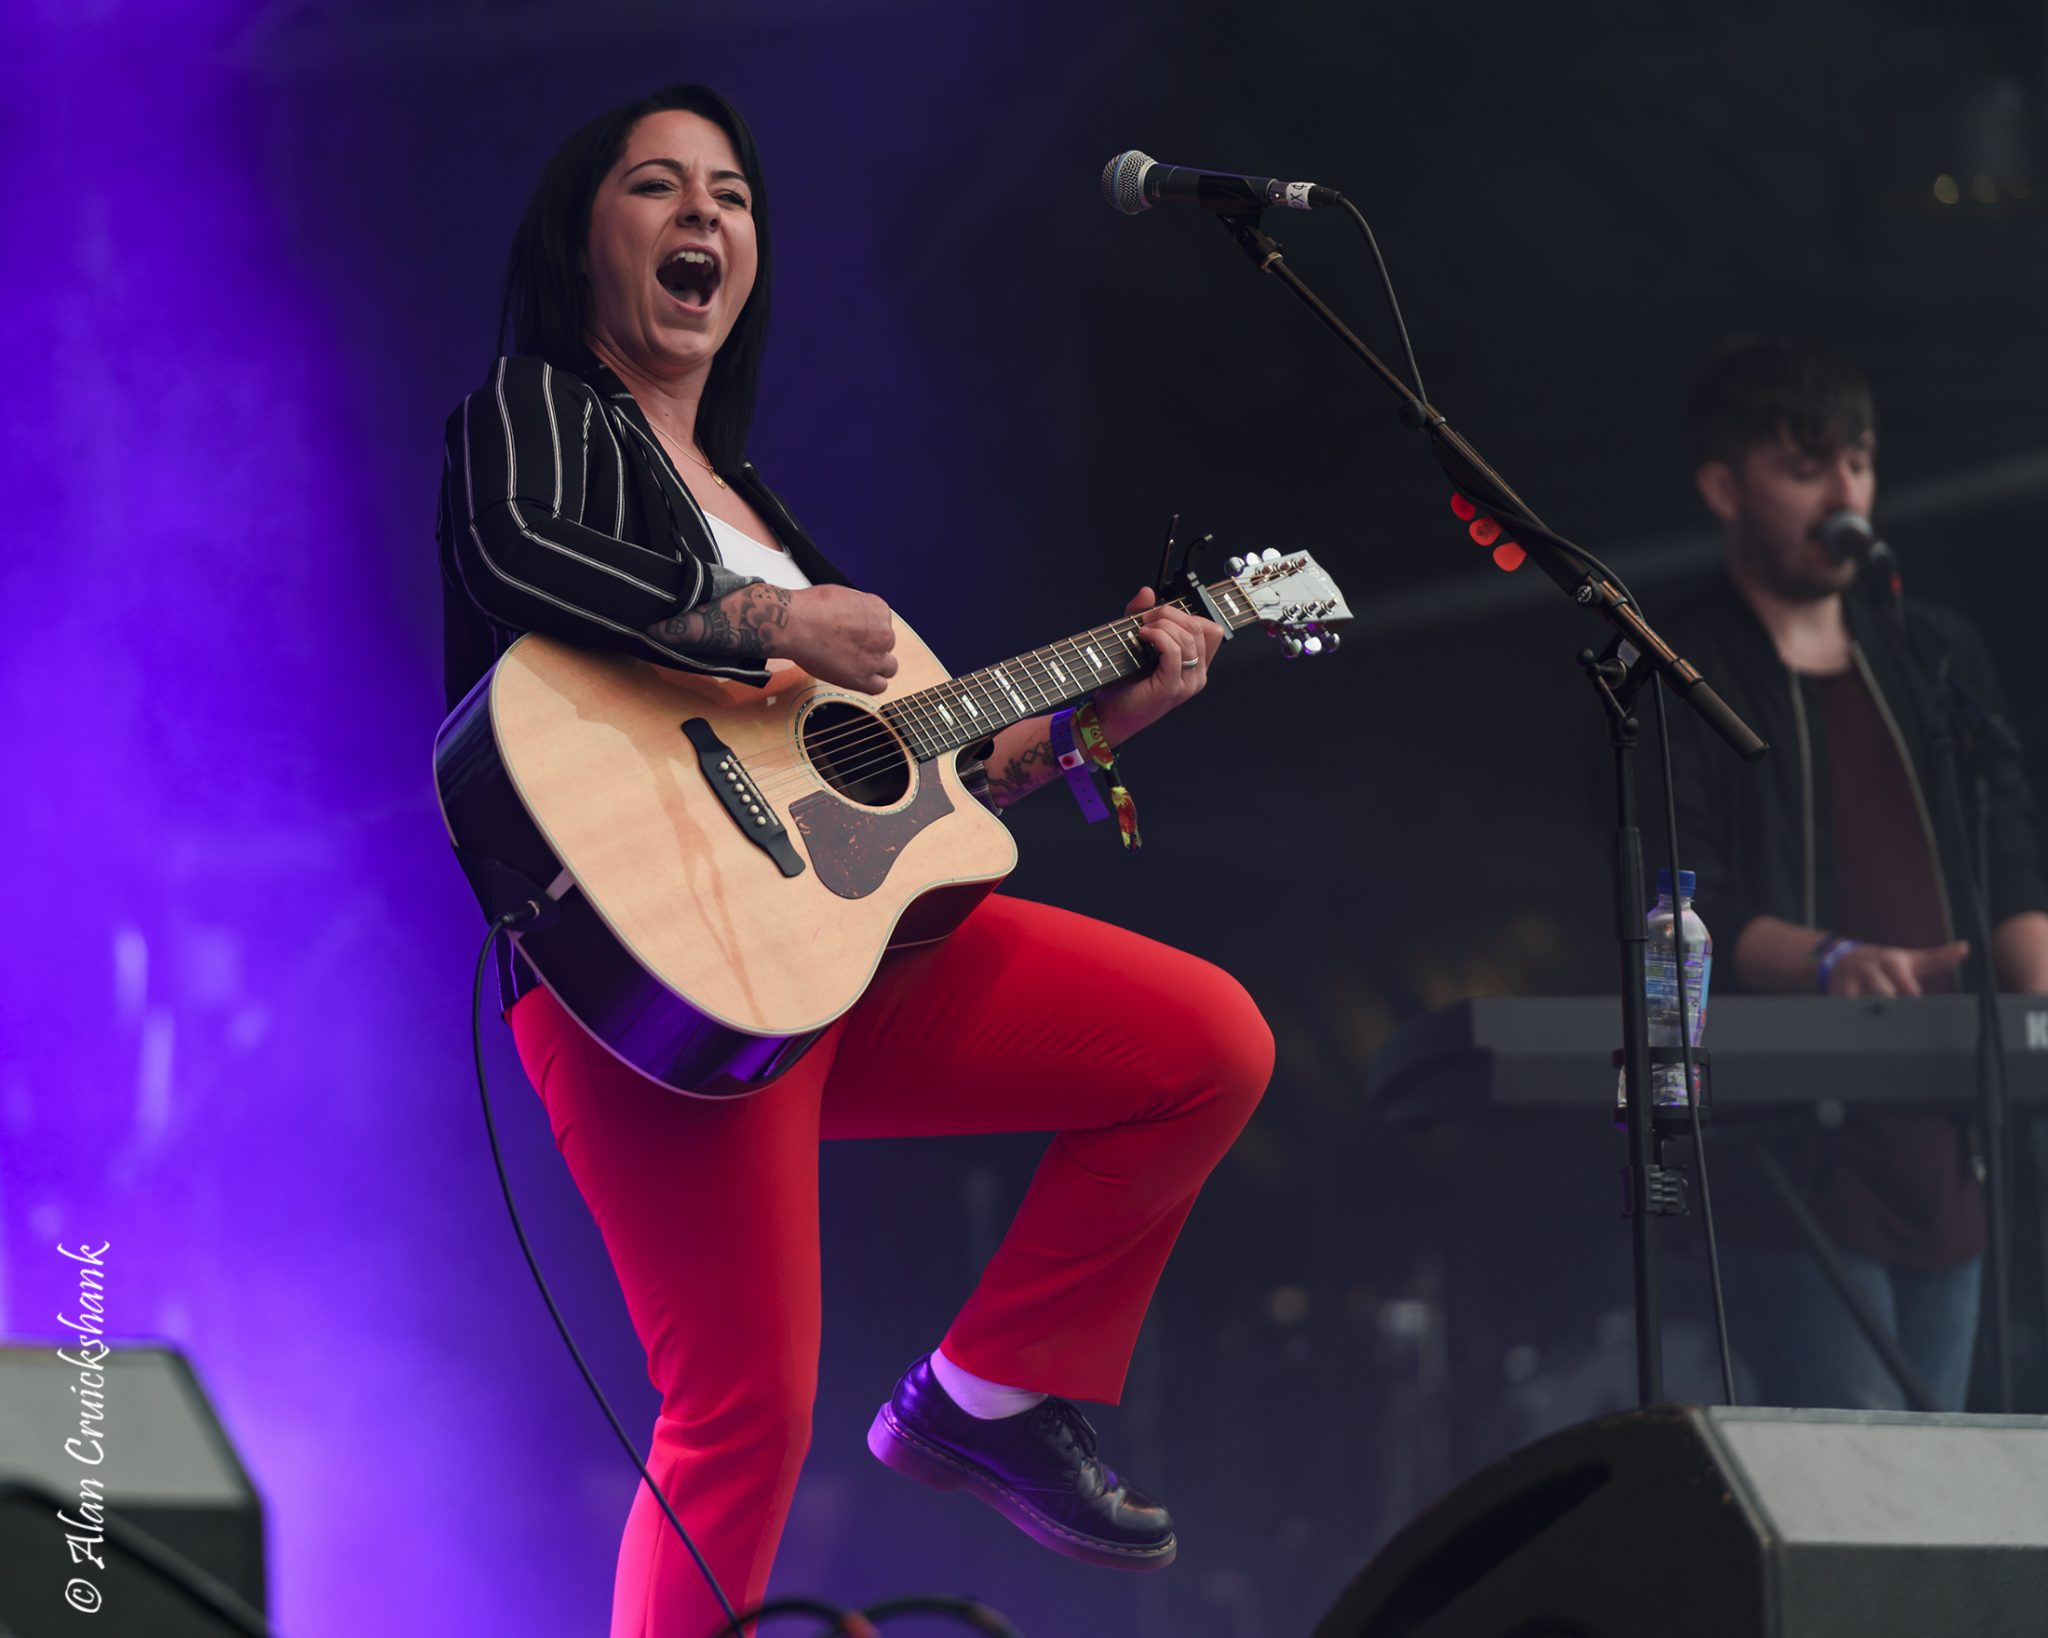 vhLng - Lucy Spraggan Friday Belladrum 2018 - IMAGES